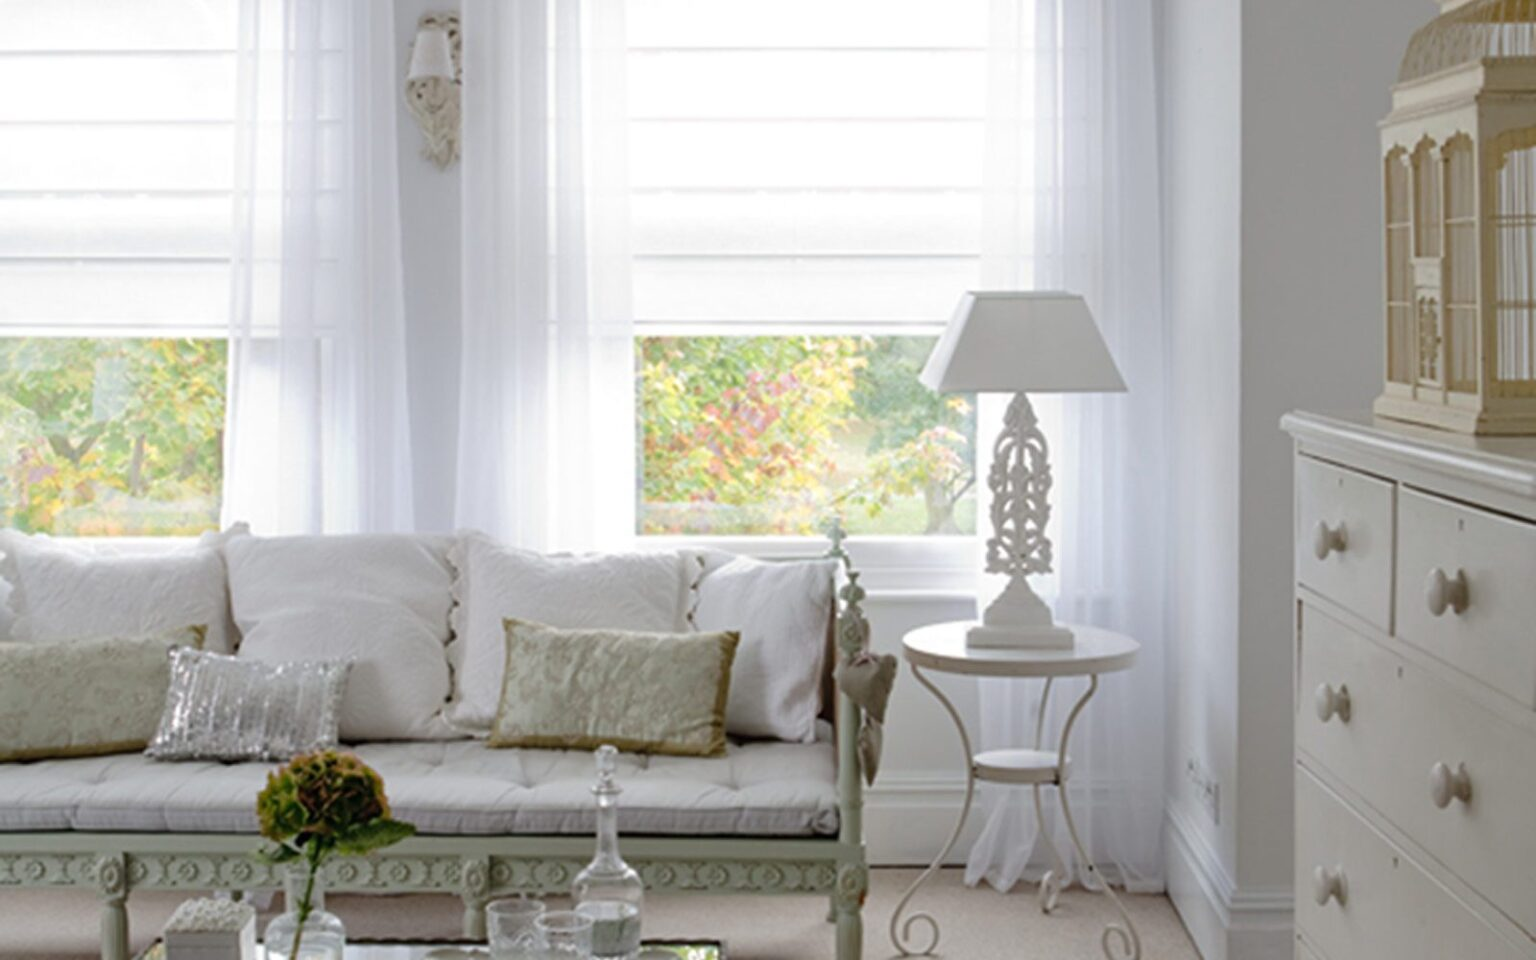 Best Sheer Fabric For Curtains Roman Blinds Surrey Blinds Amp Shutters